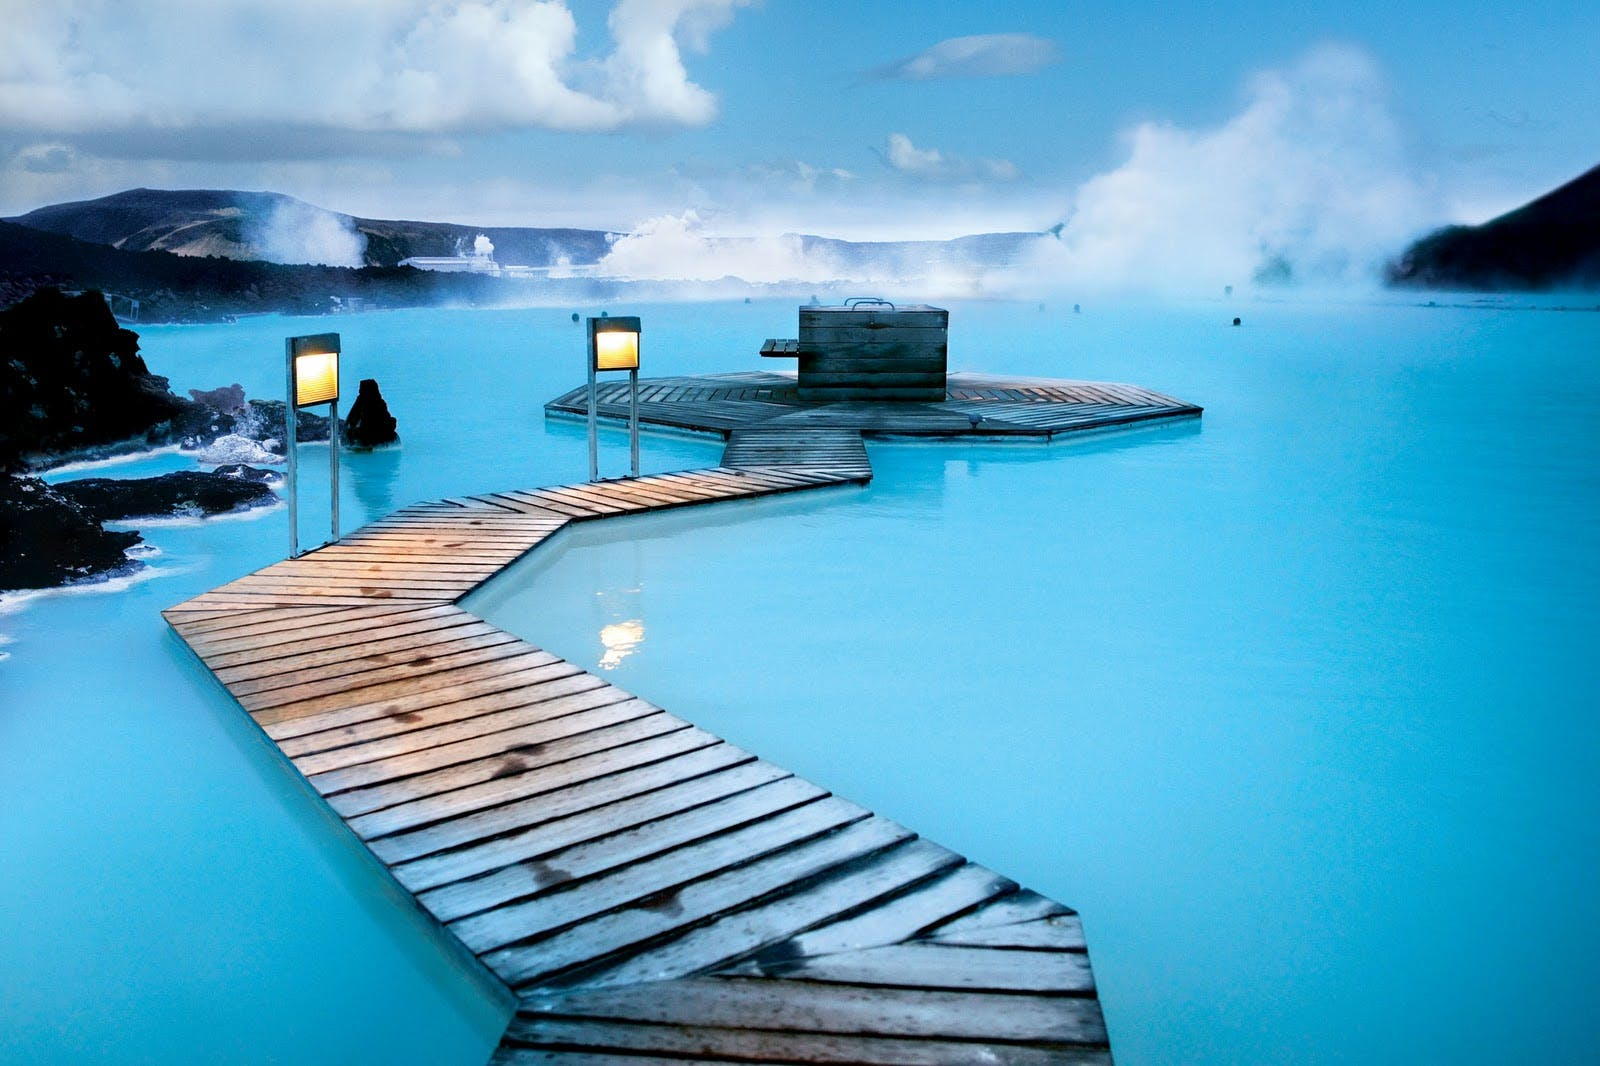 The Blue Lagoon Spa has become an iconic location in Iceland